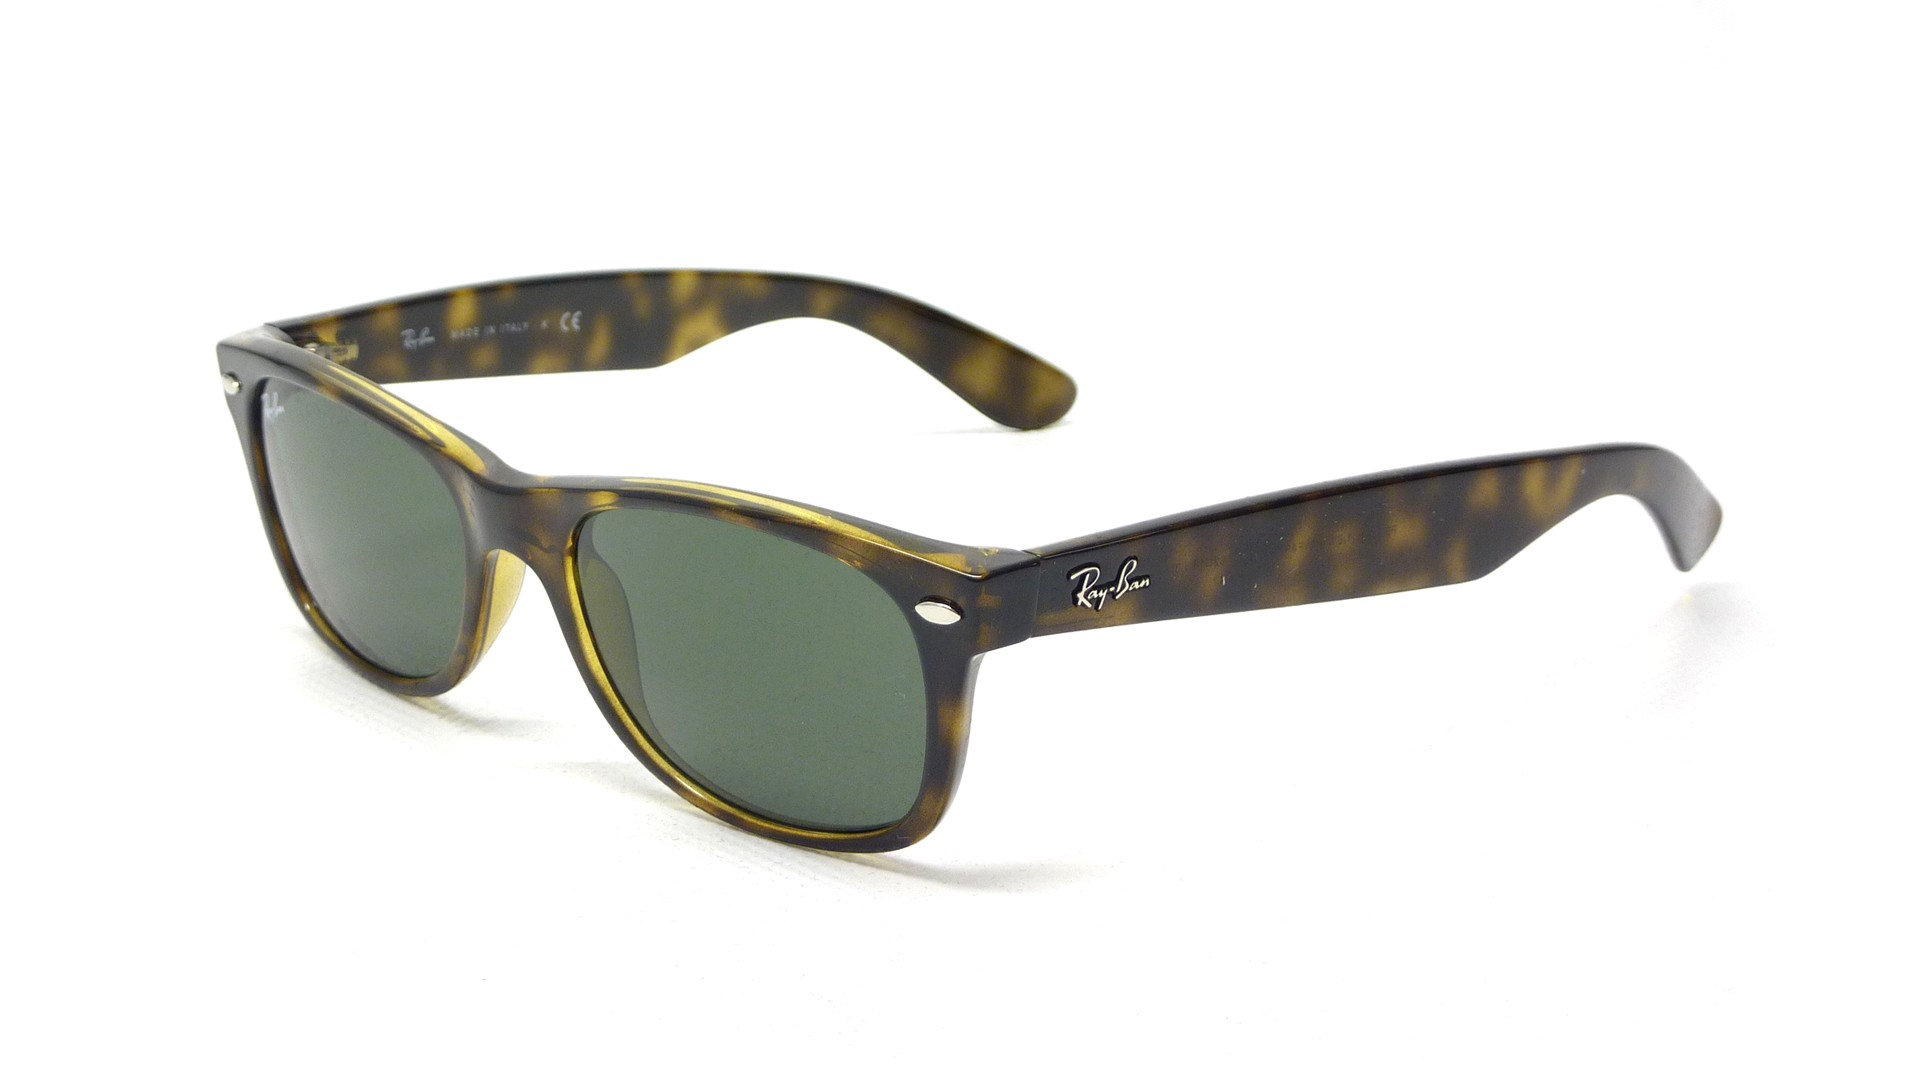 Glasses Frames Recto Or Quiapo : Ray Ban RB 2132 New Wayfarer 902L ecaille Large